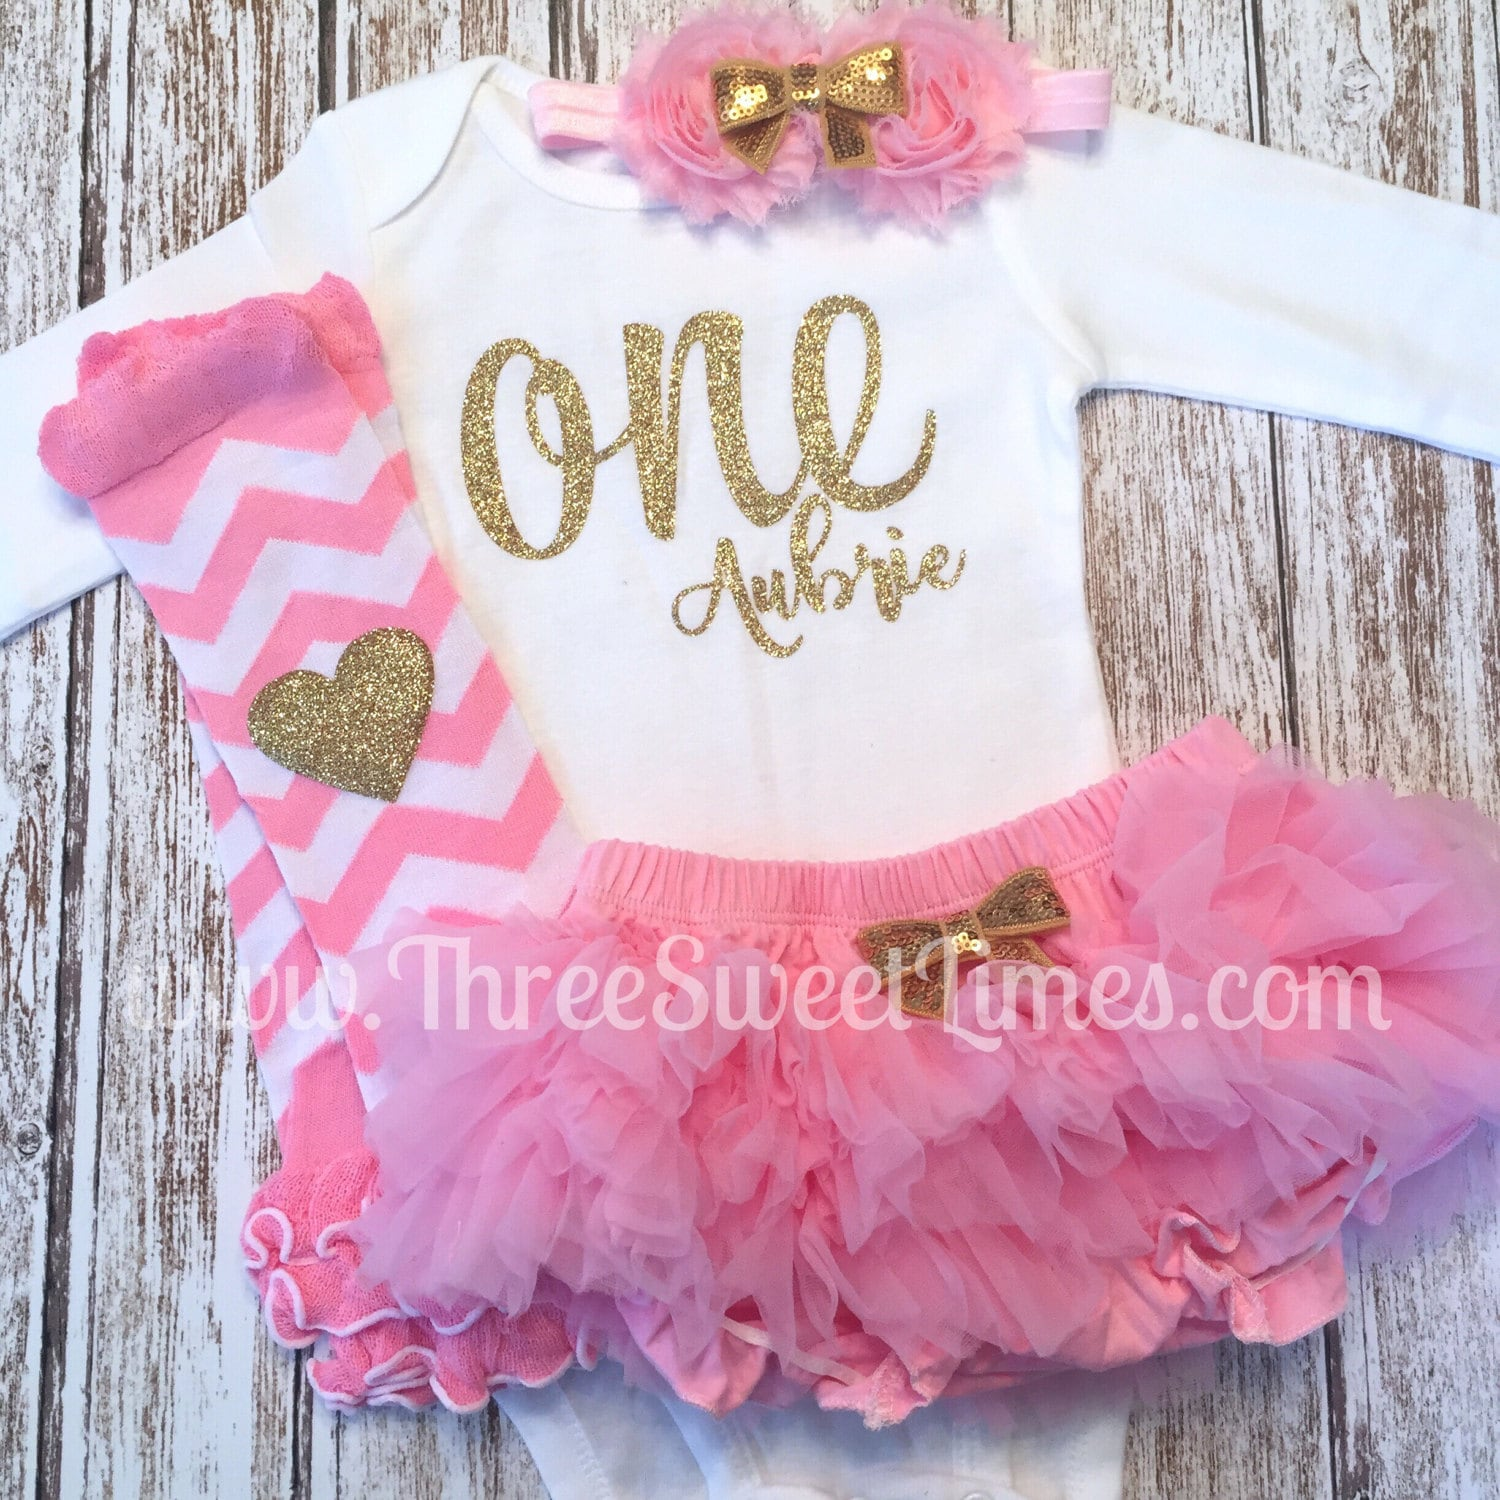 303afc4e0 First Birthday ONE Outfit Personalized Birthday Party Tutu